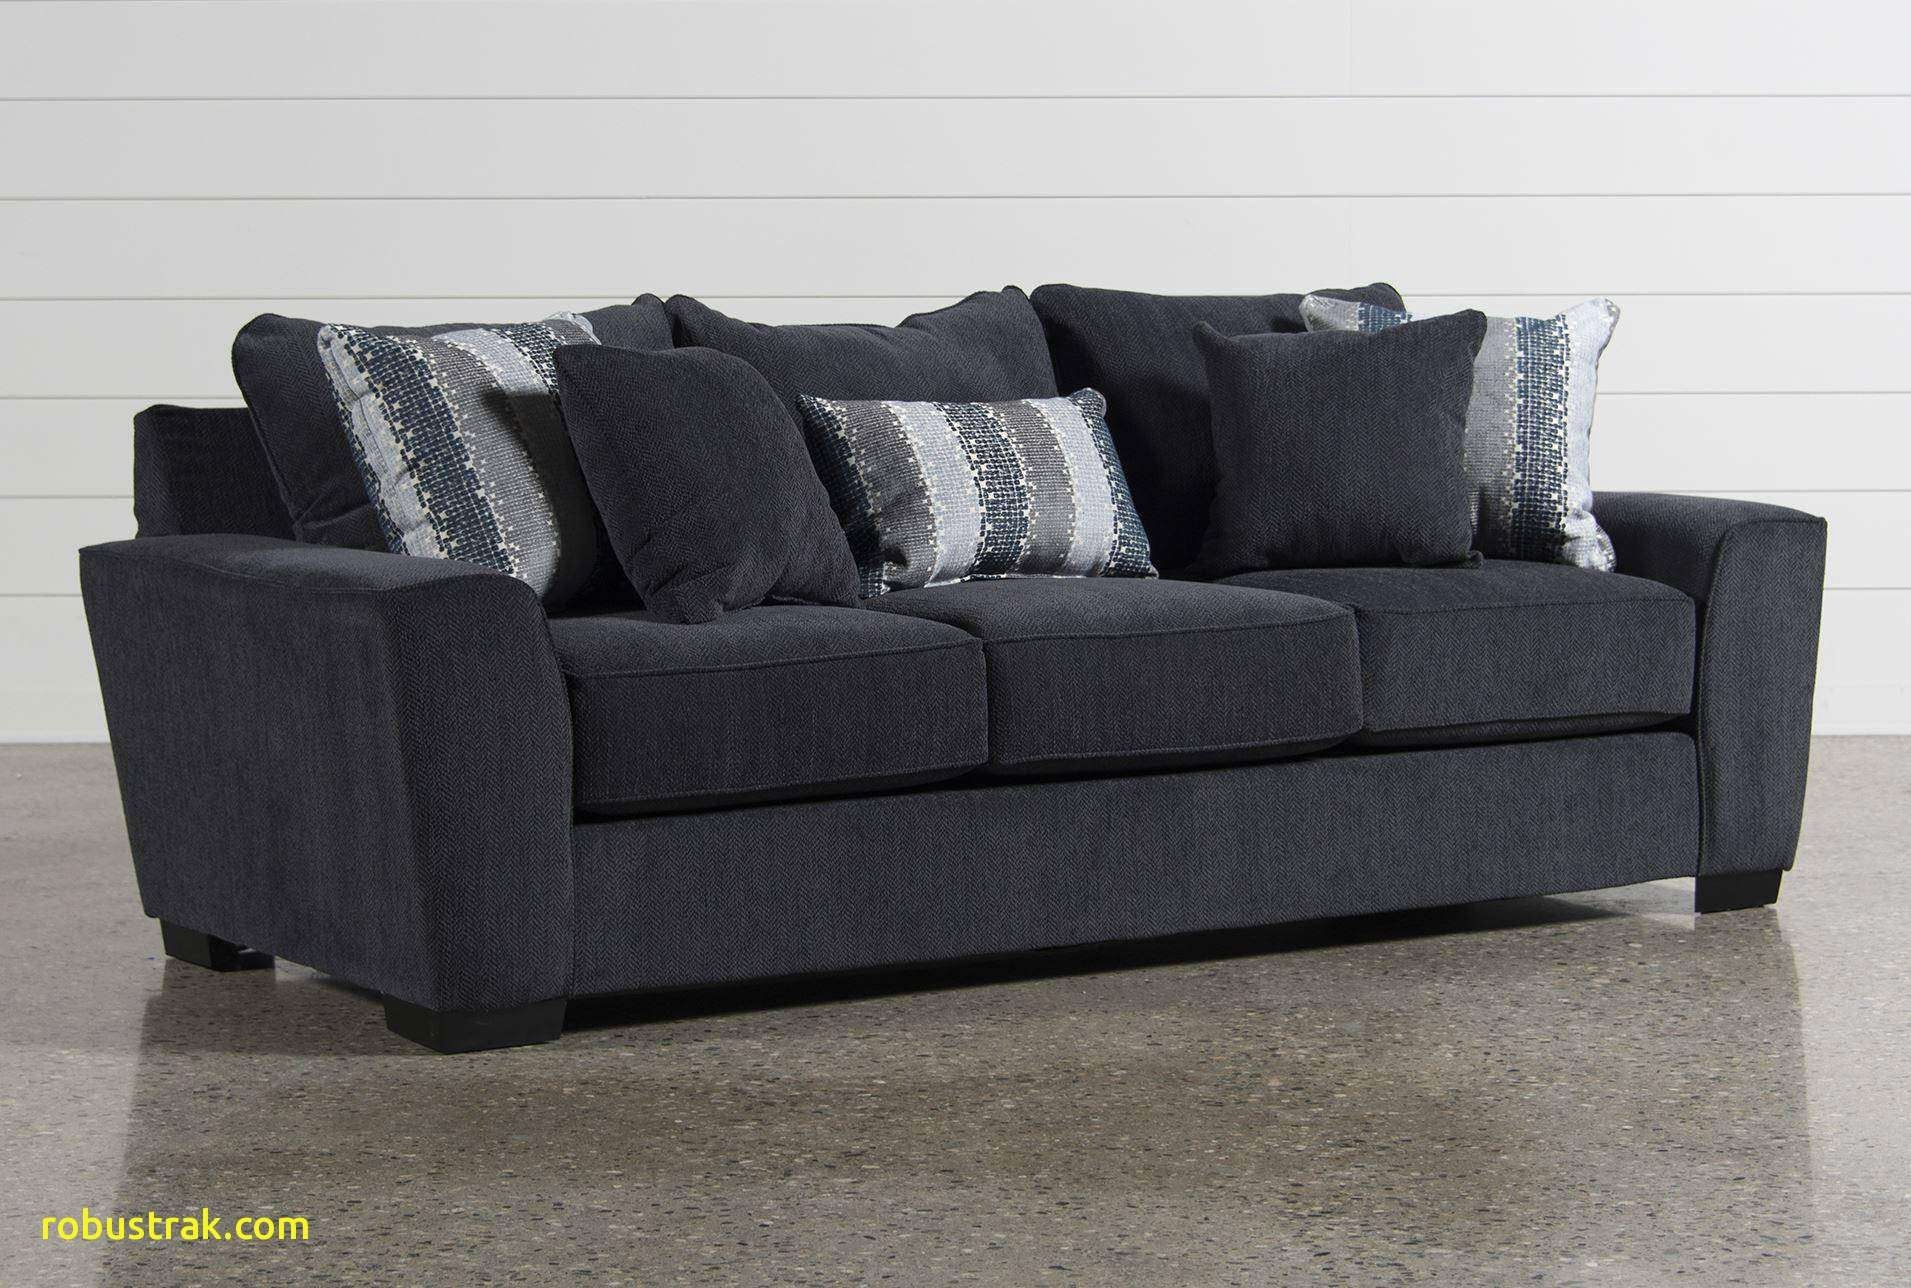 24 Inspirierende Sofa L Formige Sofa Grey Sofa Living Room Gray Sofa Living Sofas For Small Spaces